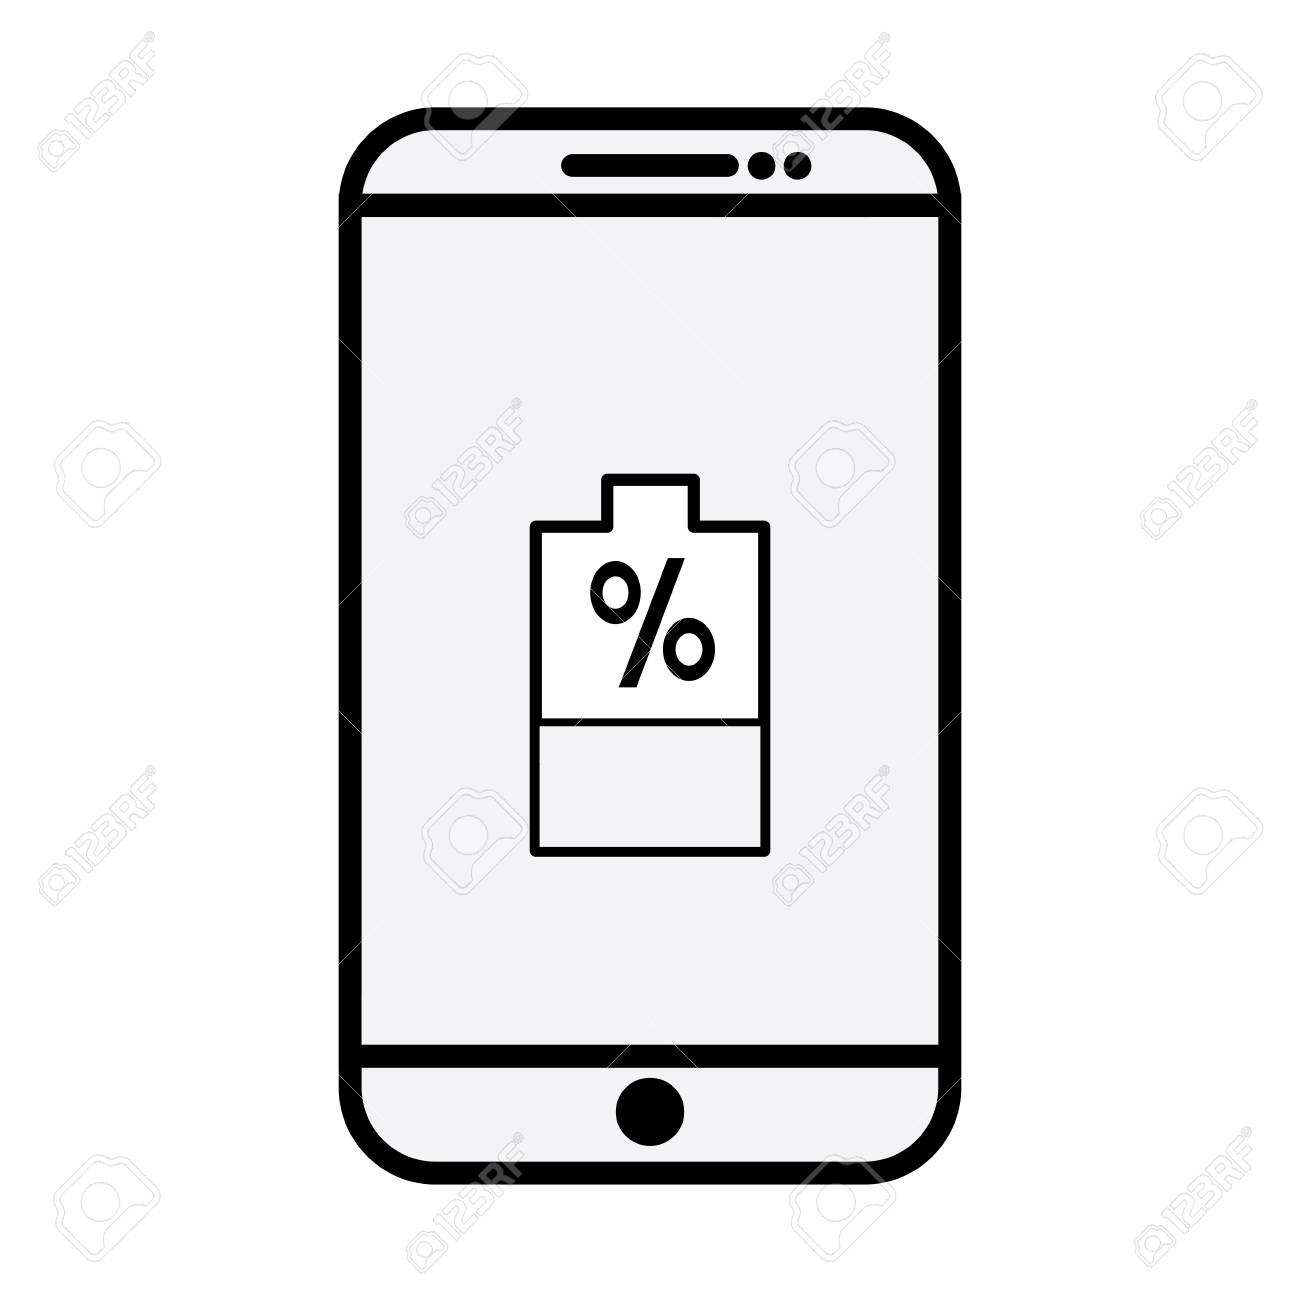 Smartphone Device With Battery Percentage Icon On Screen Illustration Royalty Free Cliparts Vectors And Stock Illustration Image 95679624